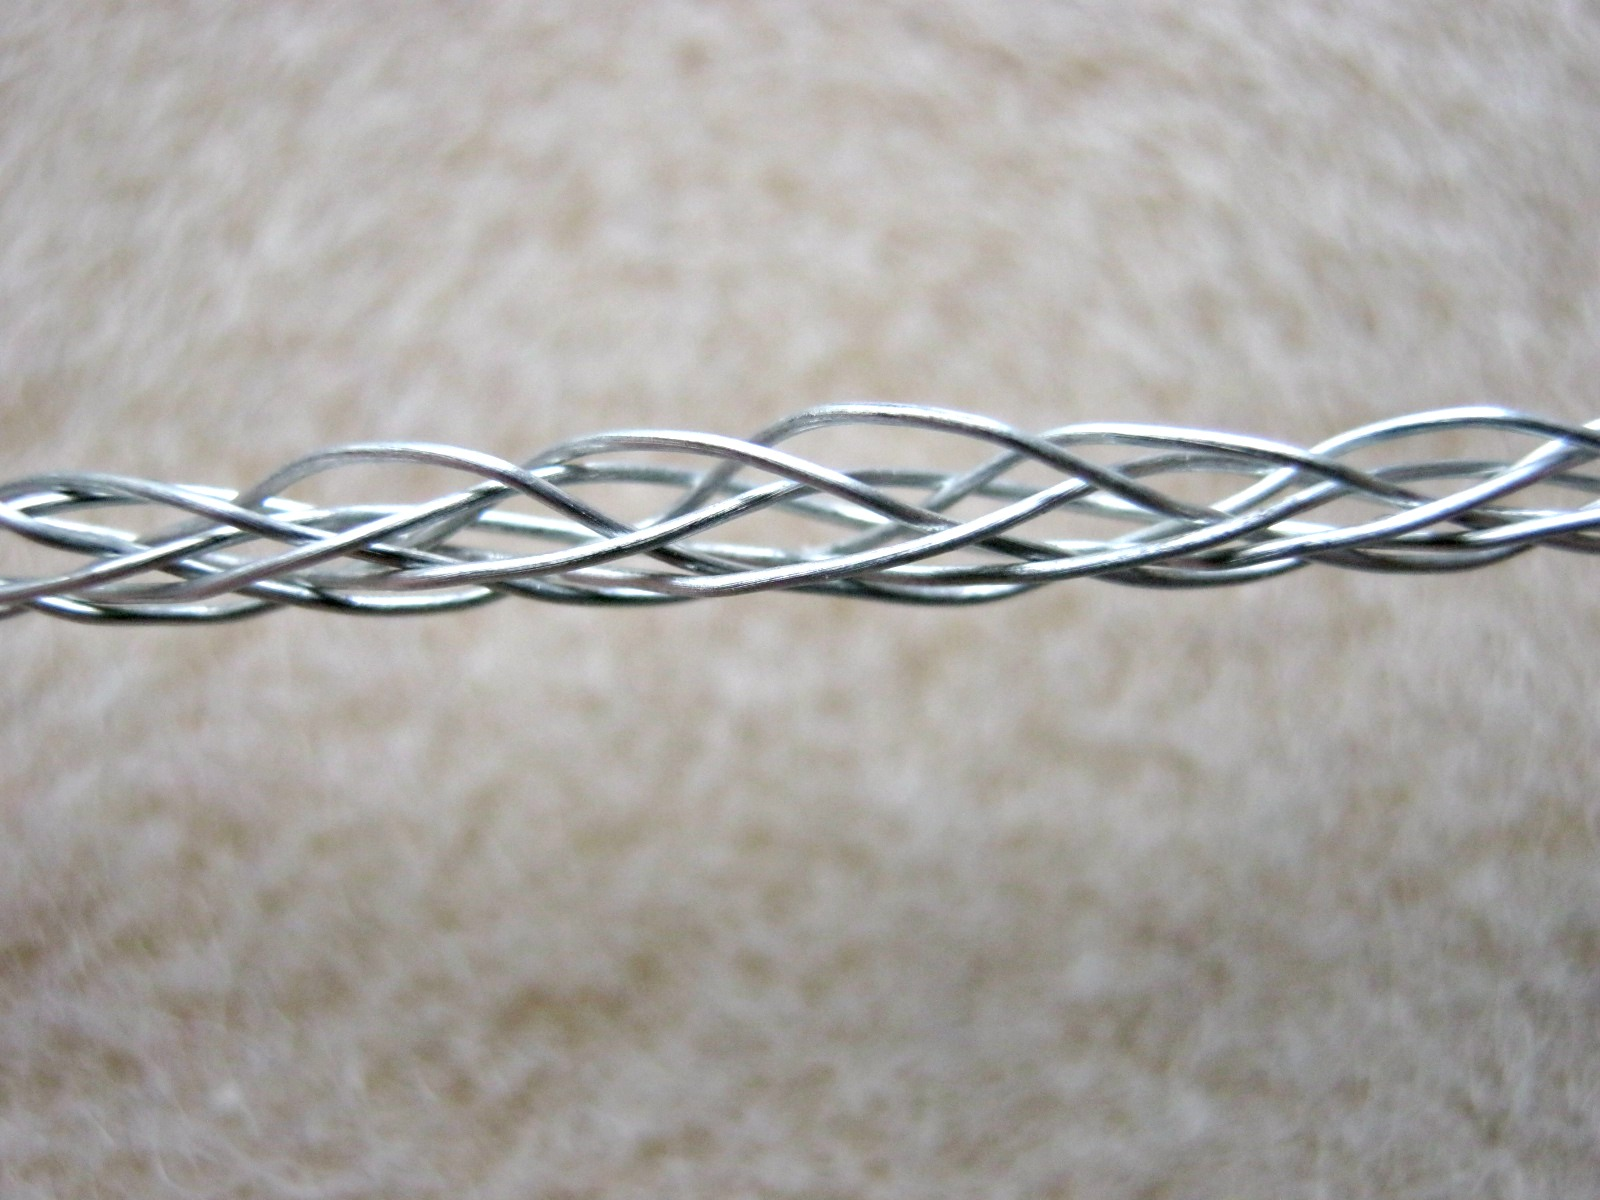 Northwoods Creative Studio: Plaiting with wire, an experiment